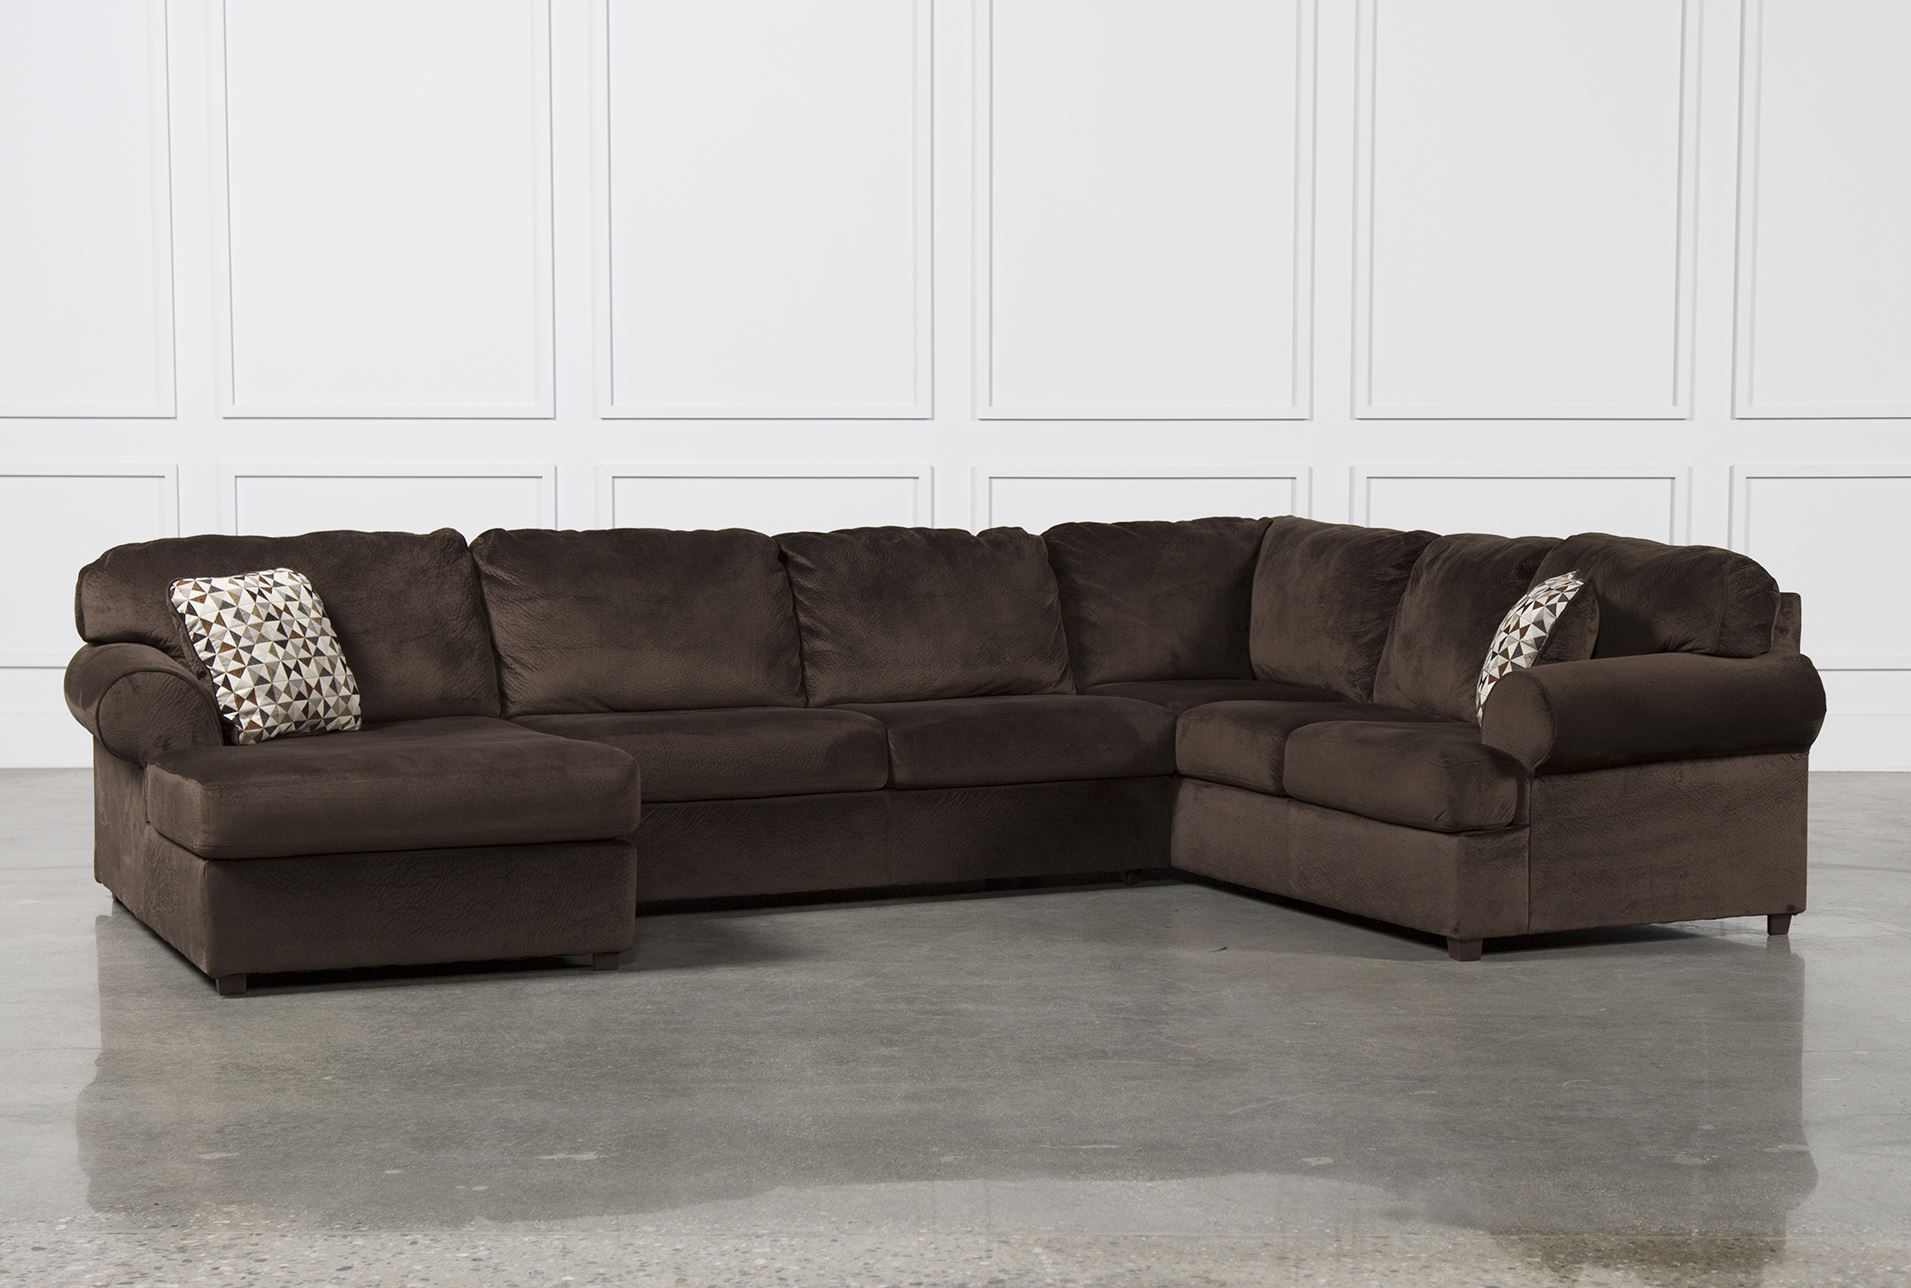 Jessa Place Chocolate 3 Piece Sectional W/Laf Chaise With Norfolk Chocolate 3 Piece Sectionals With Raf Chaise (View 11 of 15)